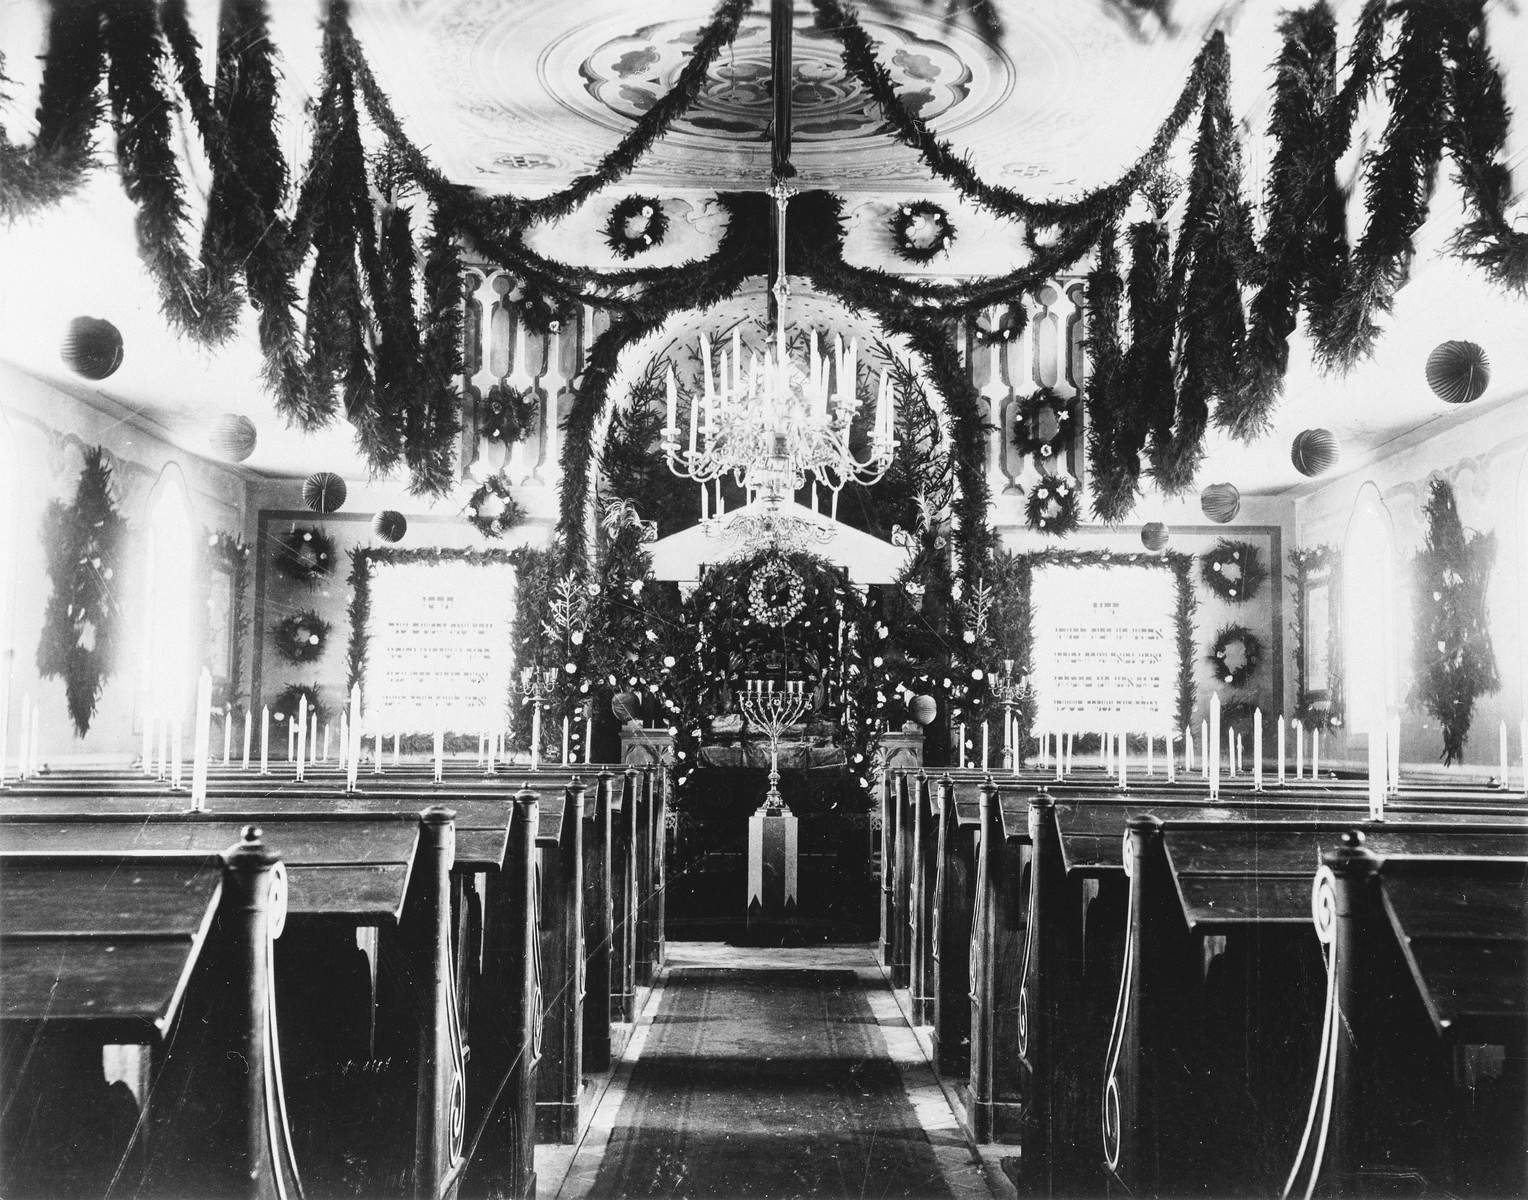 View of the sanctuary in the Buttenwiesen synagogue that is decorated with evergreens.  The synagogue in Buttenwiesen was not destroyed during Kristallnacht.  After the war it was converted into a school and later used for other purposes.